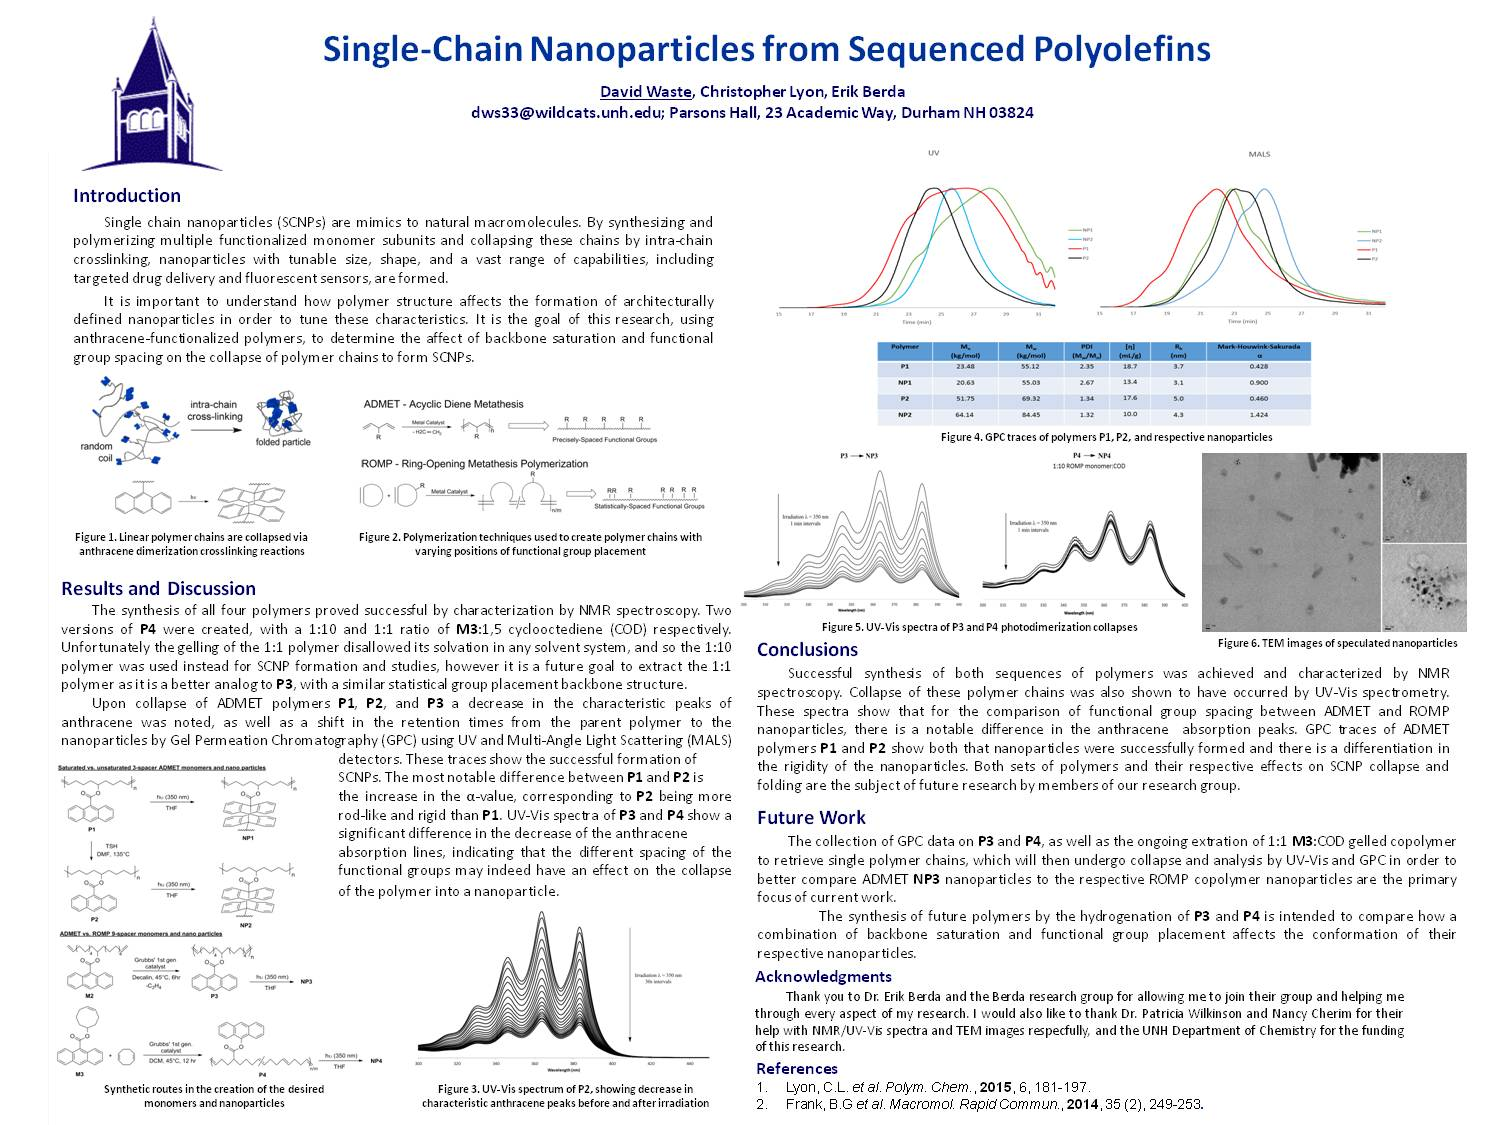 Single-Chain Nanoparticles From Sequenced Polyolefins by dws33